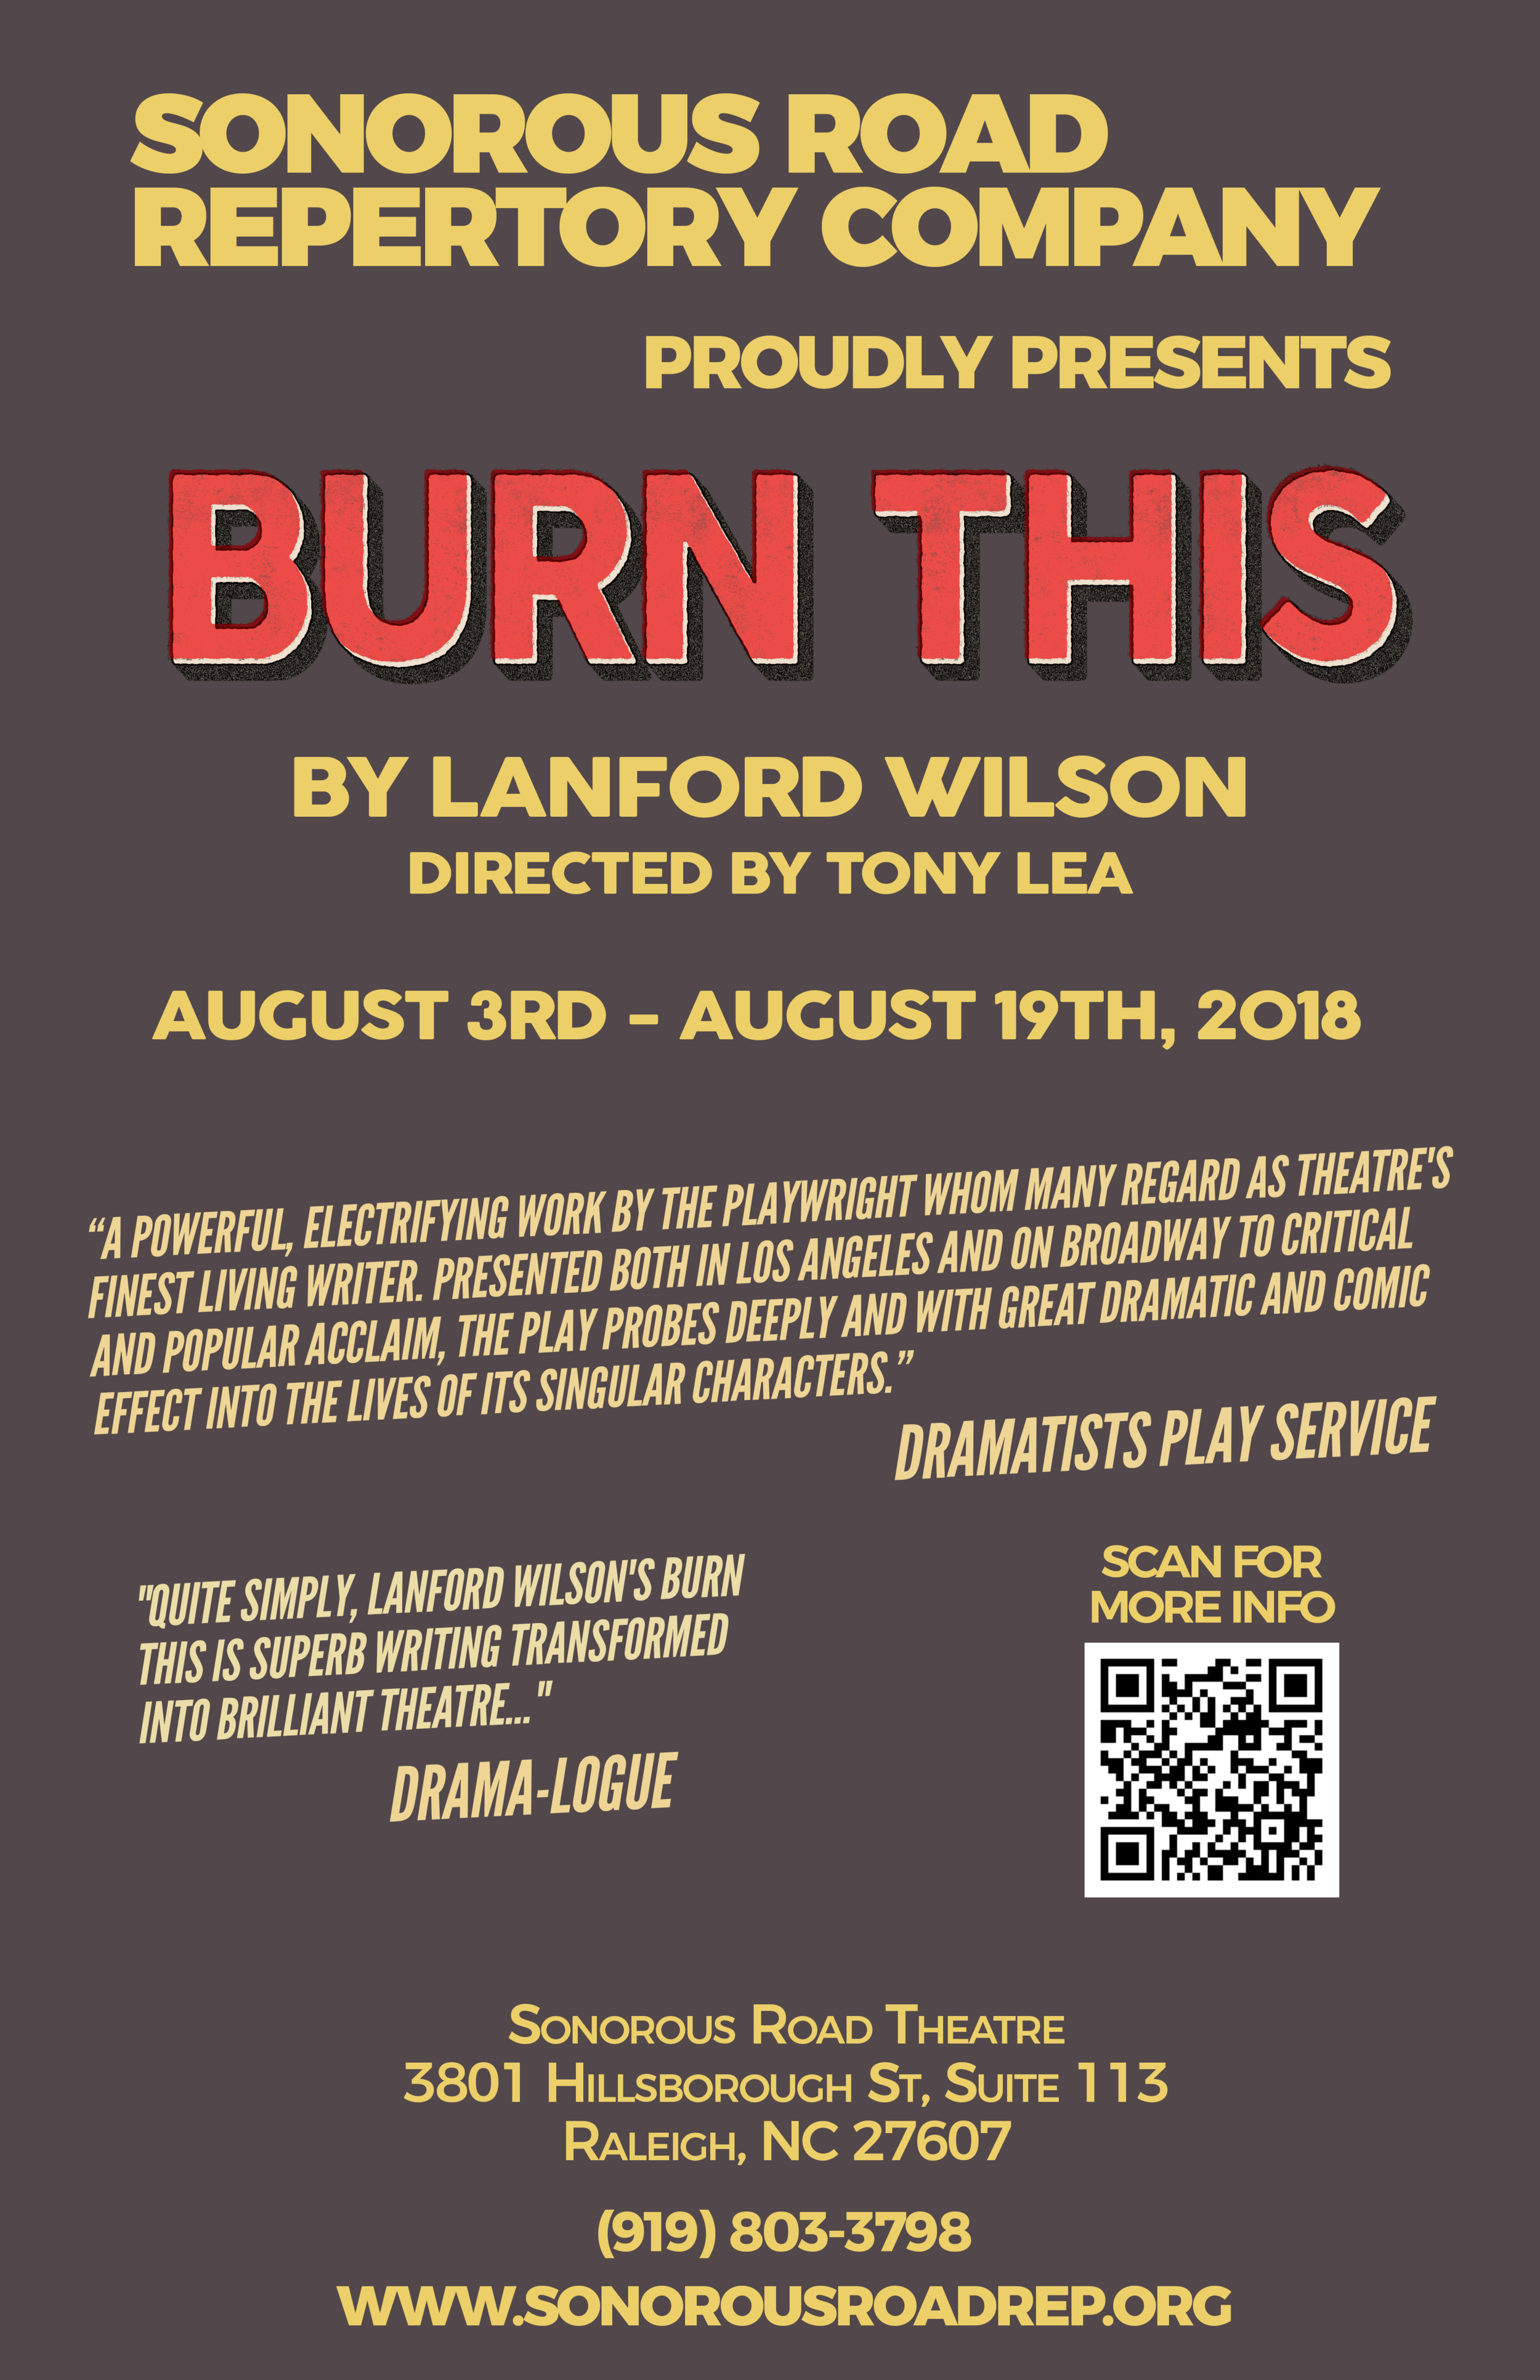 Burn This Launch Poster 11 17.png